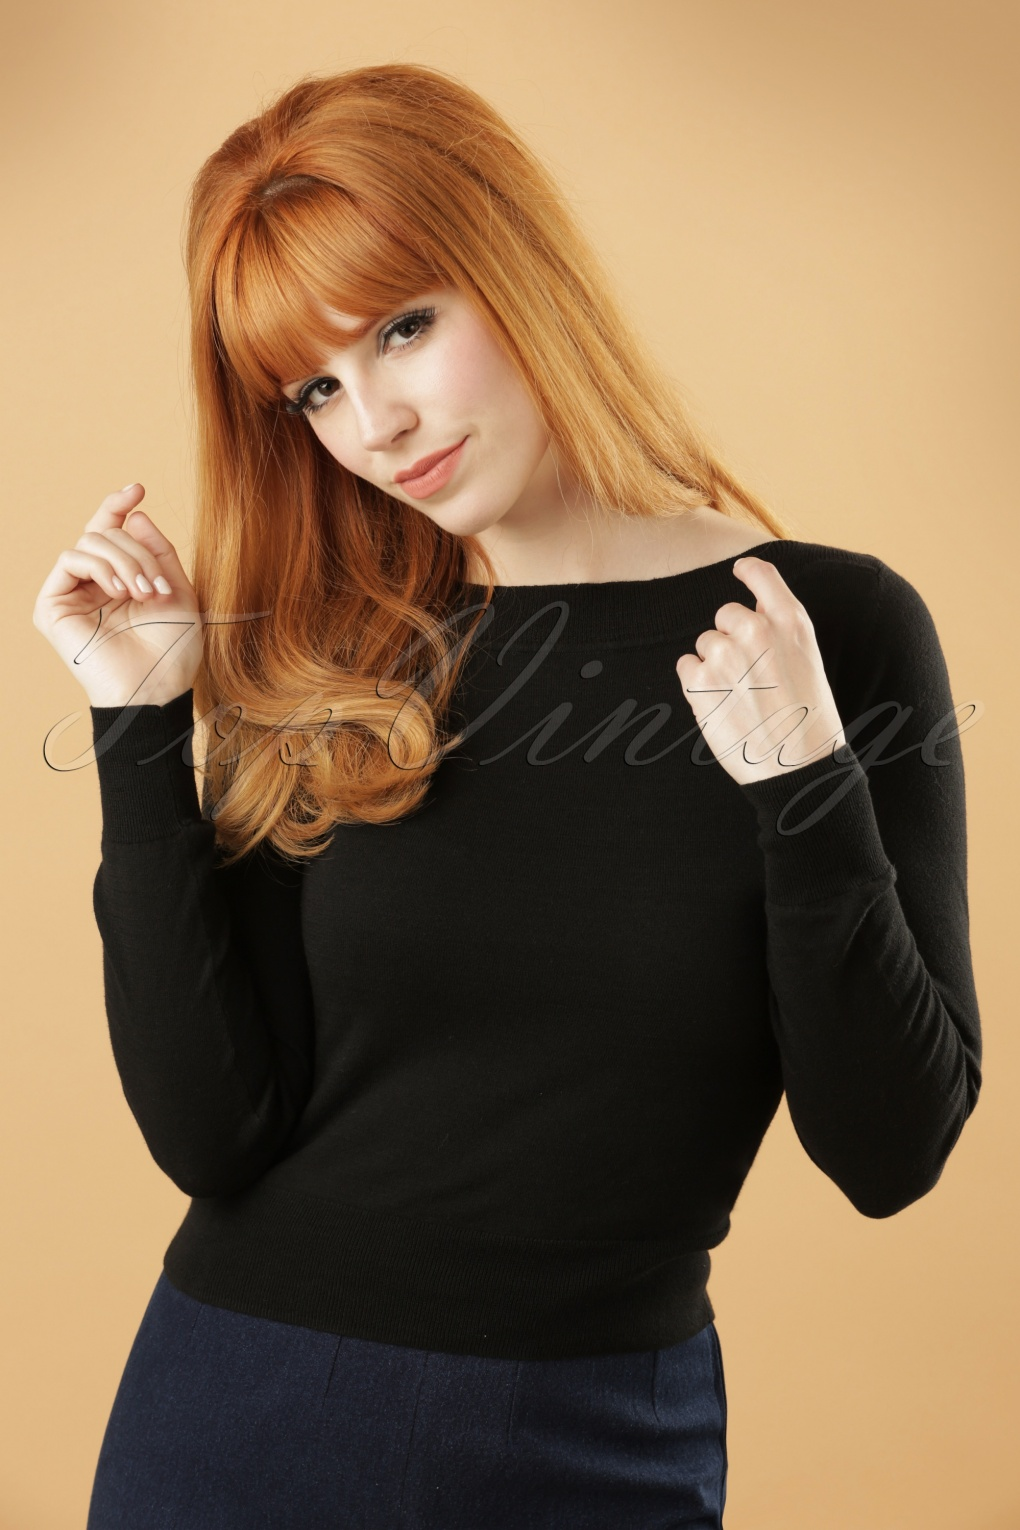 Vintage & Retro Shirts, Halter Tops, Blouses 50s Boatneck Cottonclub Top in Black £54.14 AT vintagedancer.com